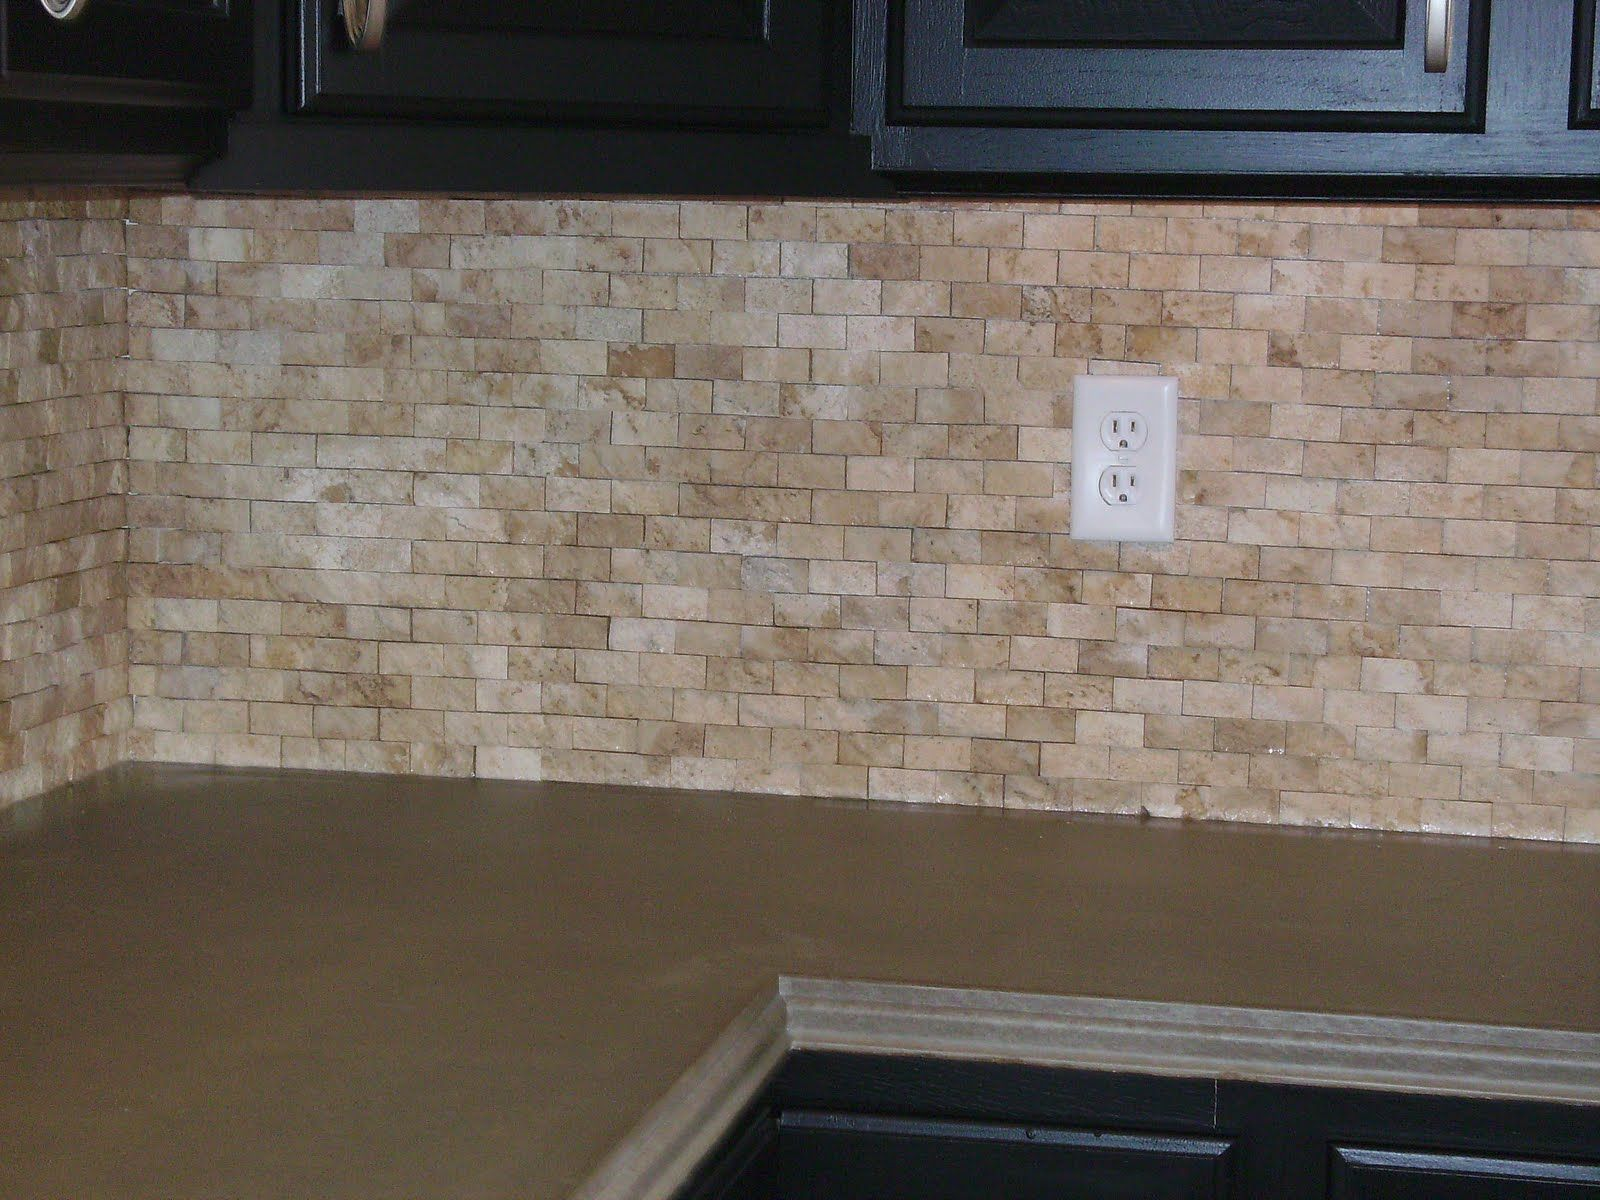 Natural Stone Backsplash travertine split face backsplash | knapp tile and flooring, inc